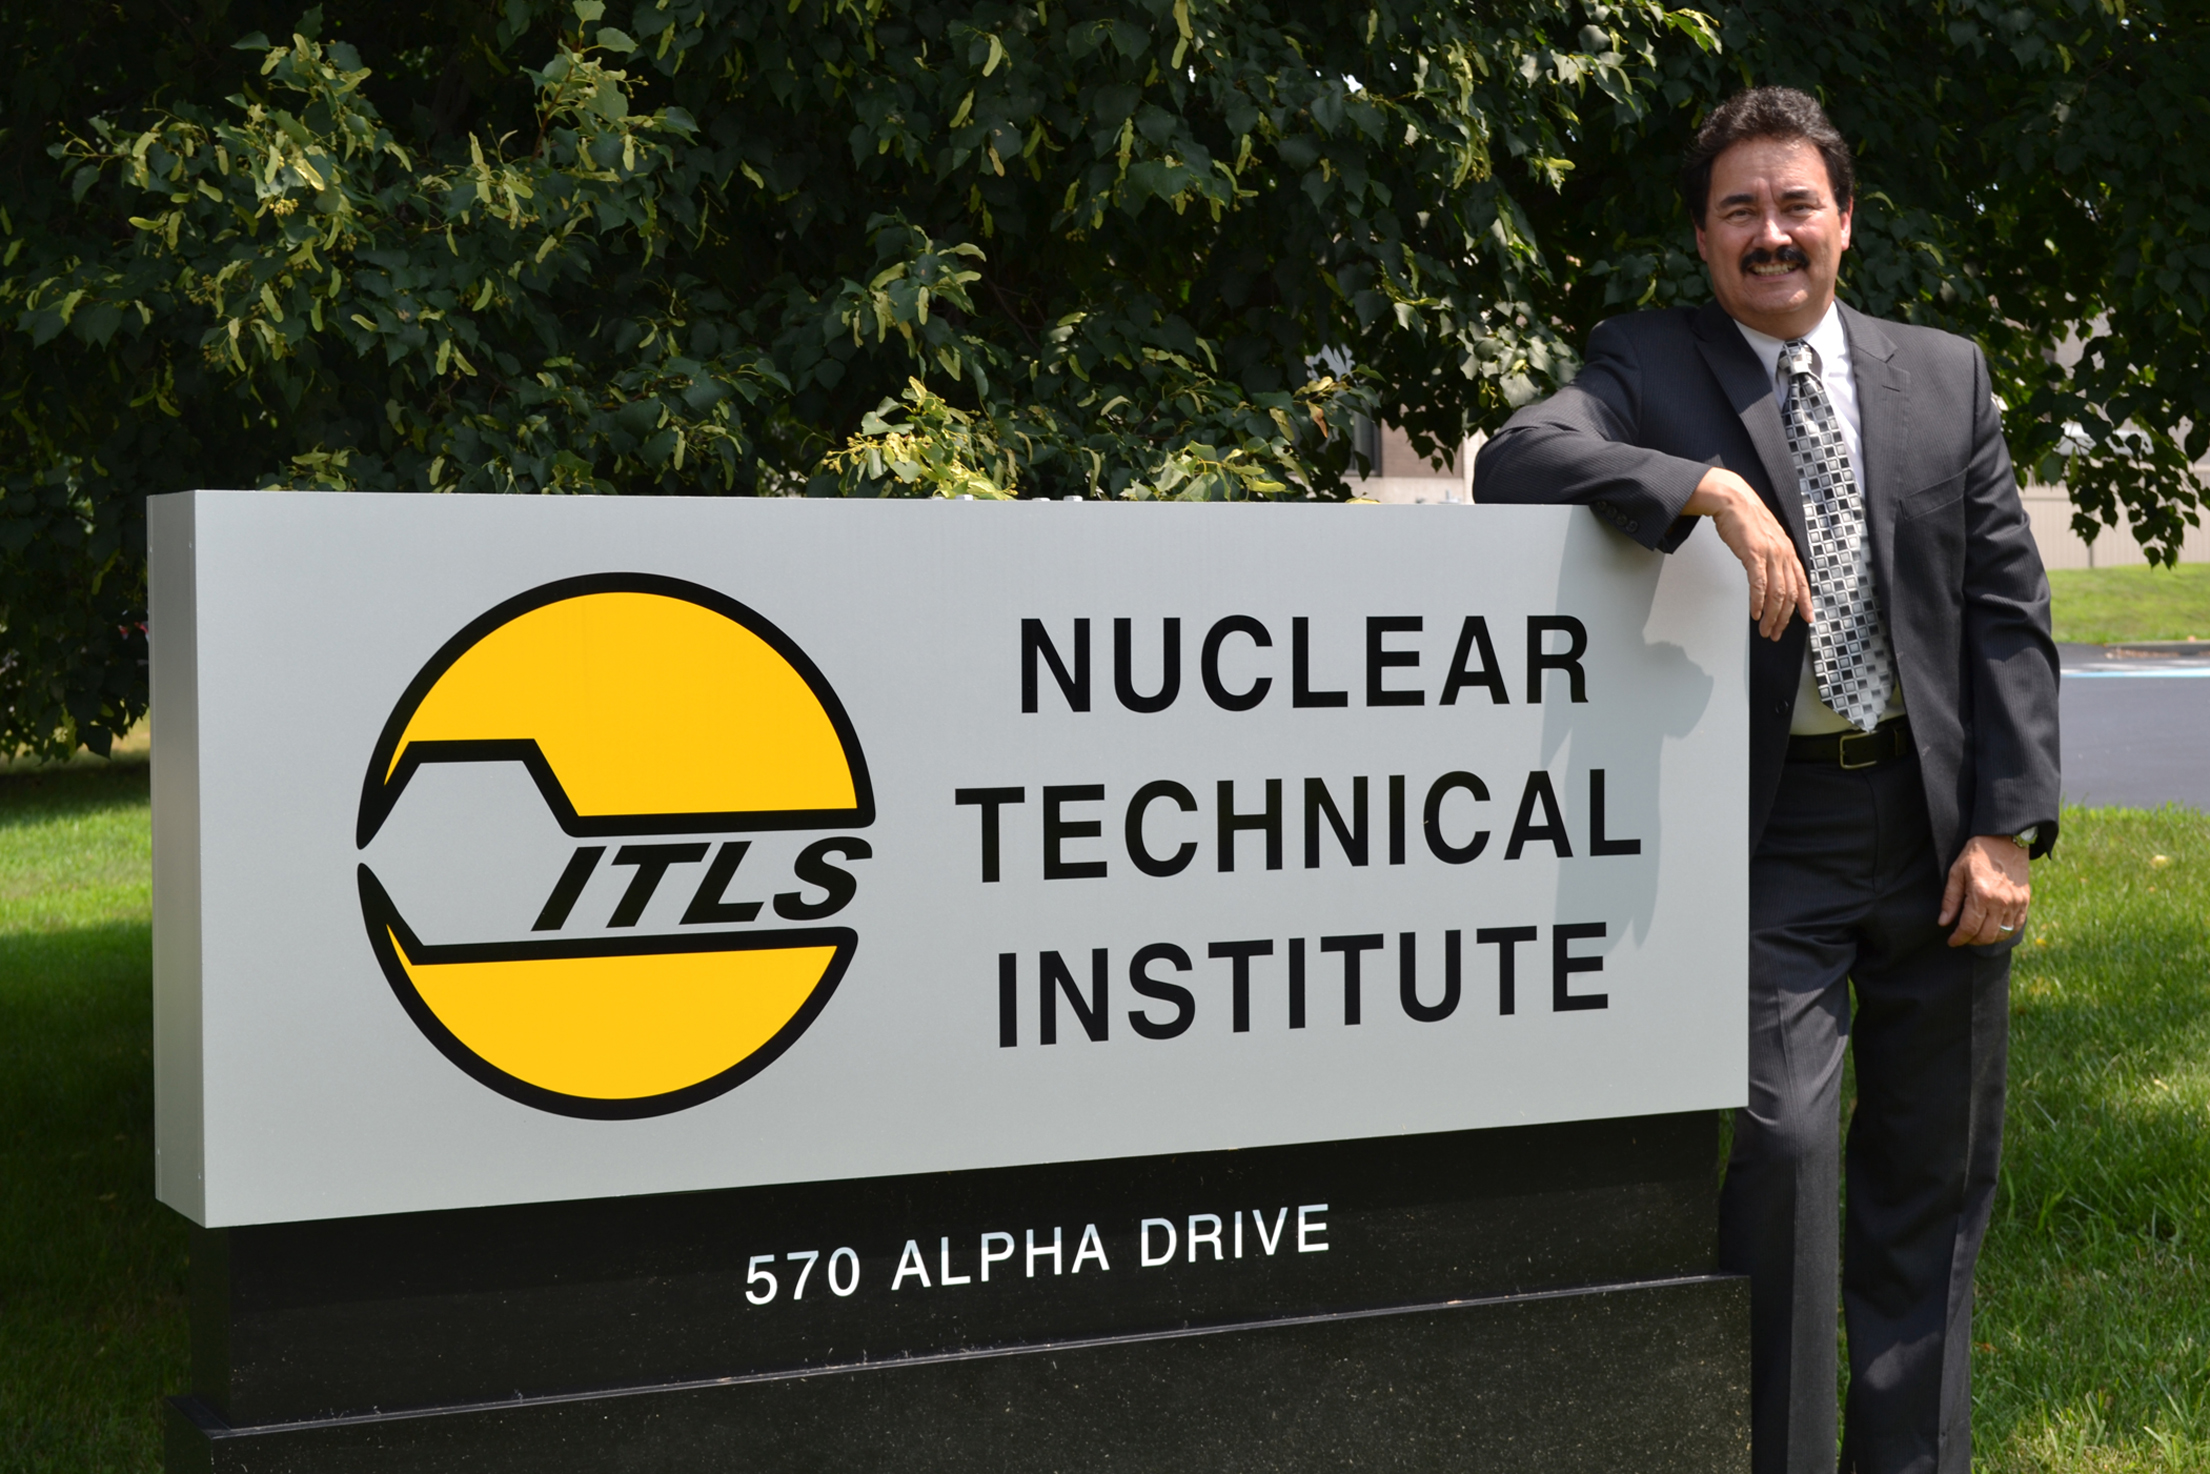 20140703hdWenzigBiz Industrial Technology Laboratory Services president A.M. (Marty) Wenzig stands in front of his company's Nuclear Technical Institute which certifies people in nuclear inspection.